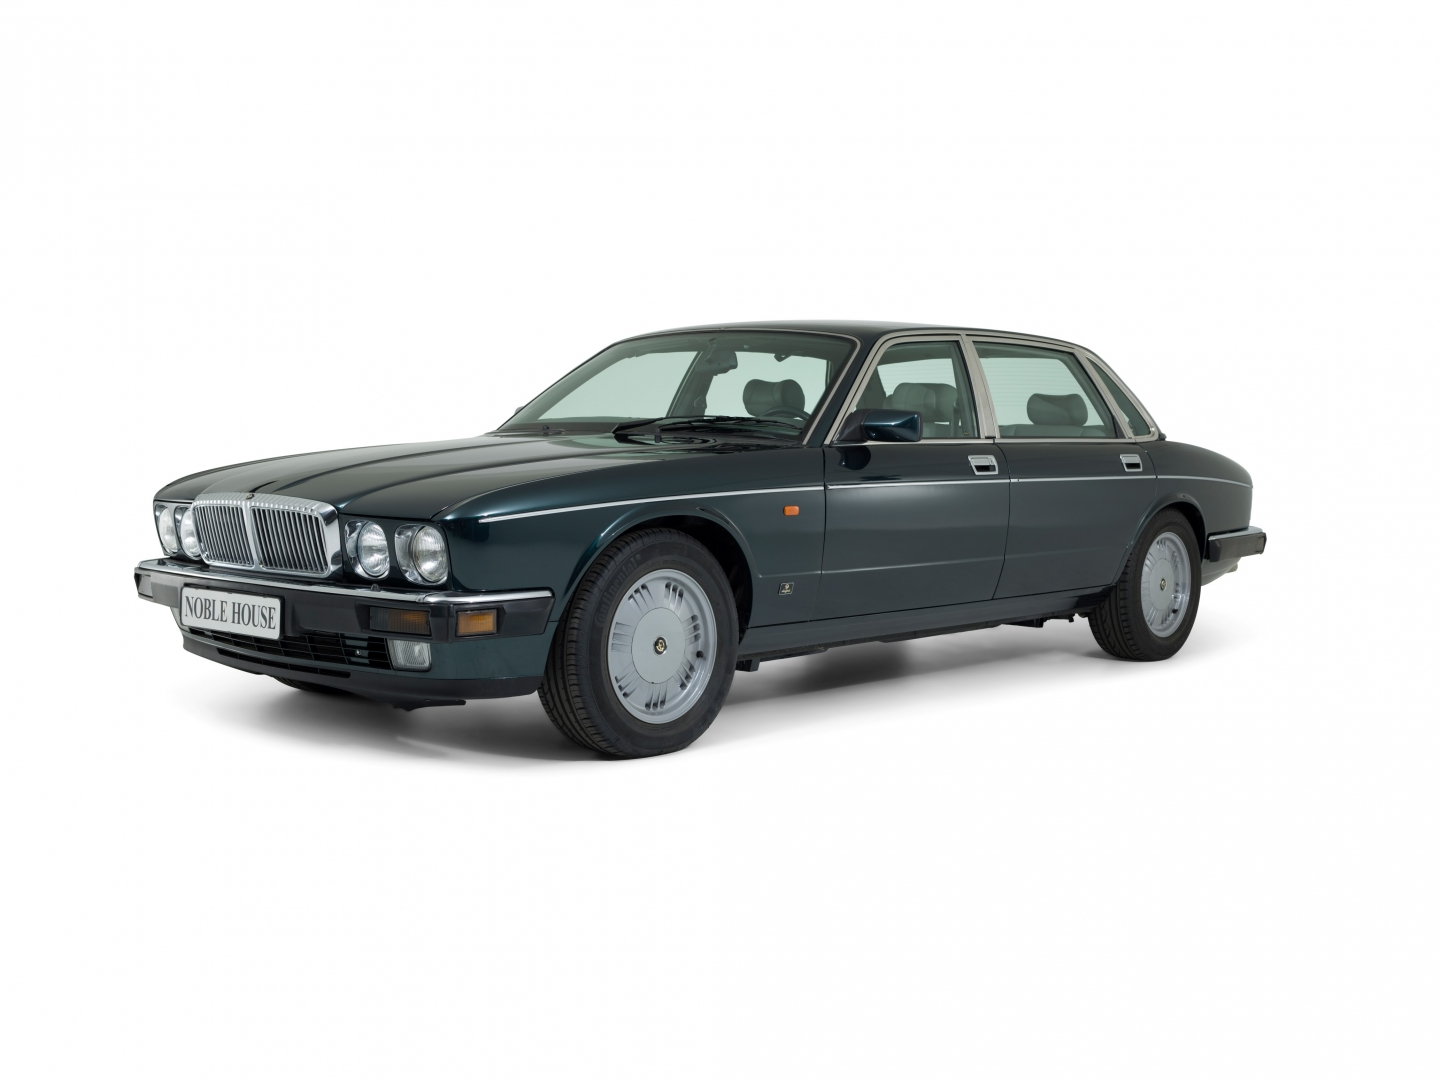 Daimler Majestic XJ40 Noble House Classics NL Front View